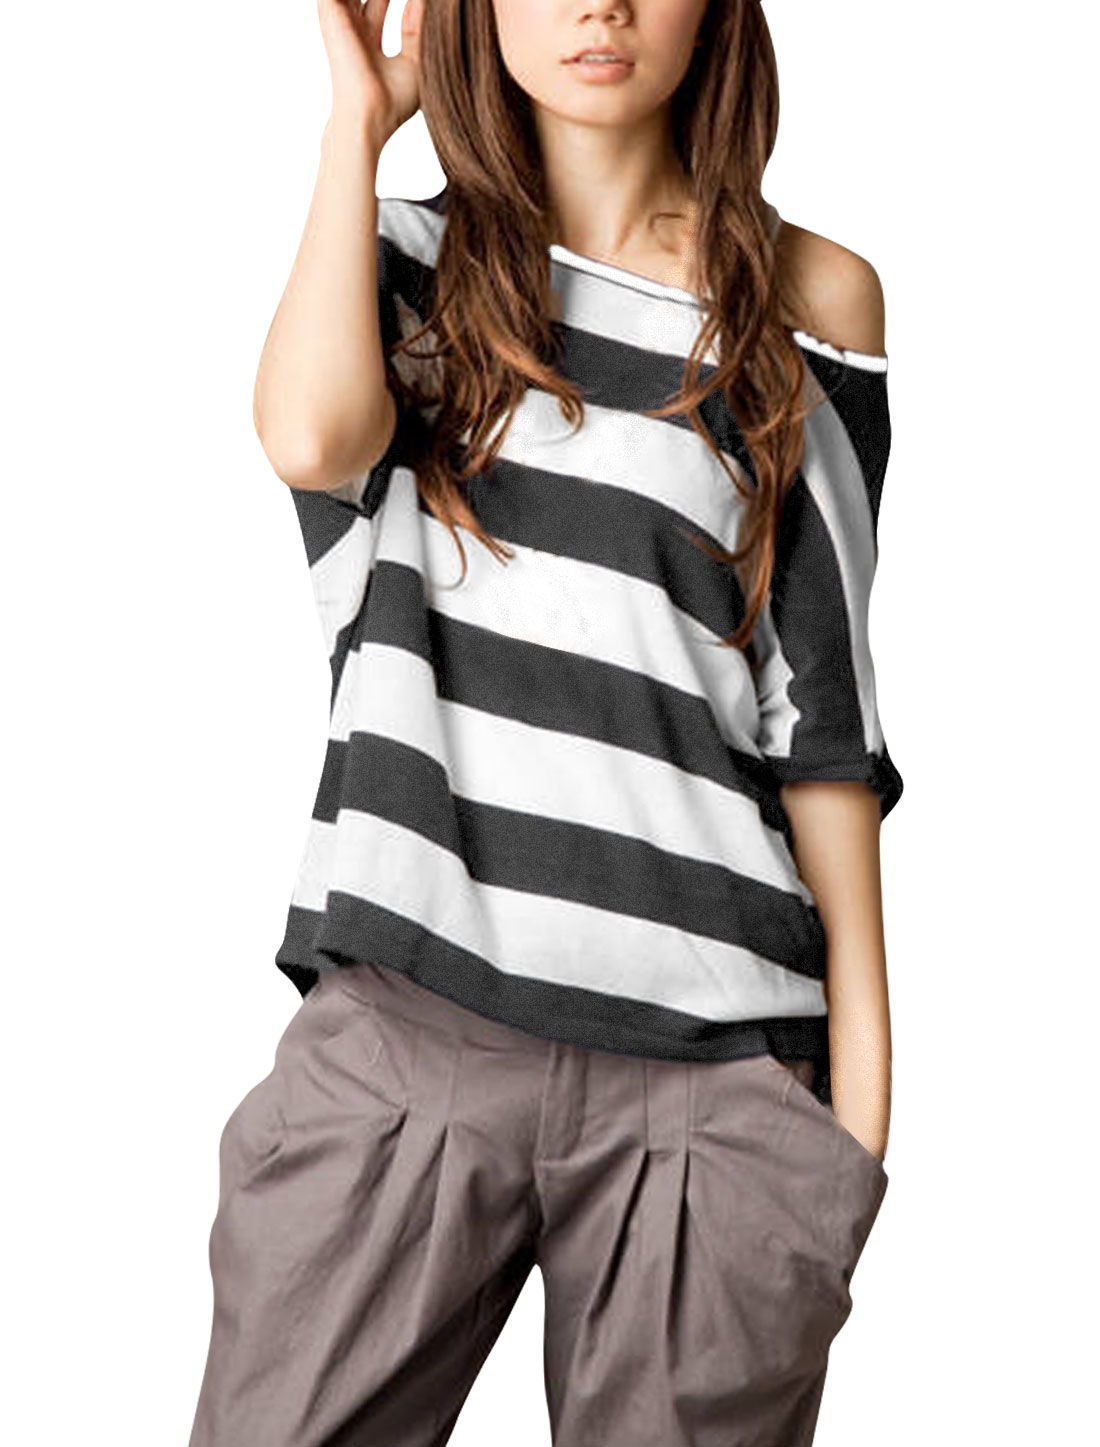 Woman Stylish Off-Shoulder Design Gray White Summer Top Shirt M